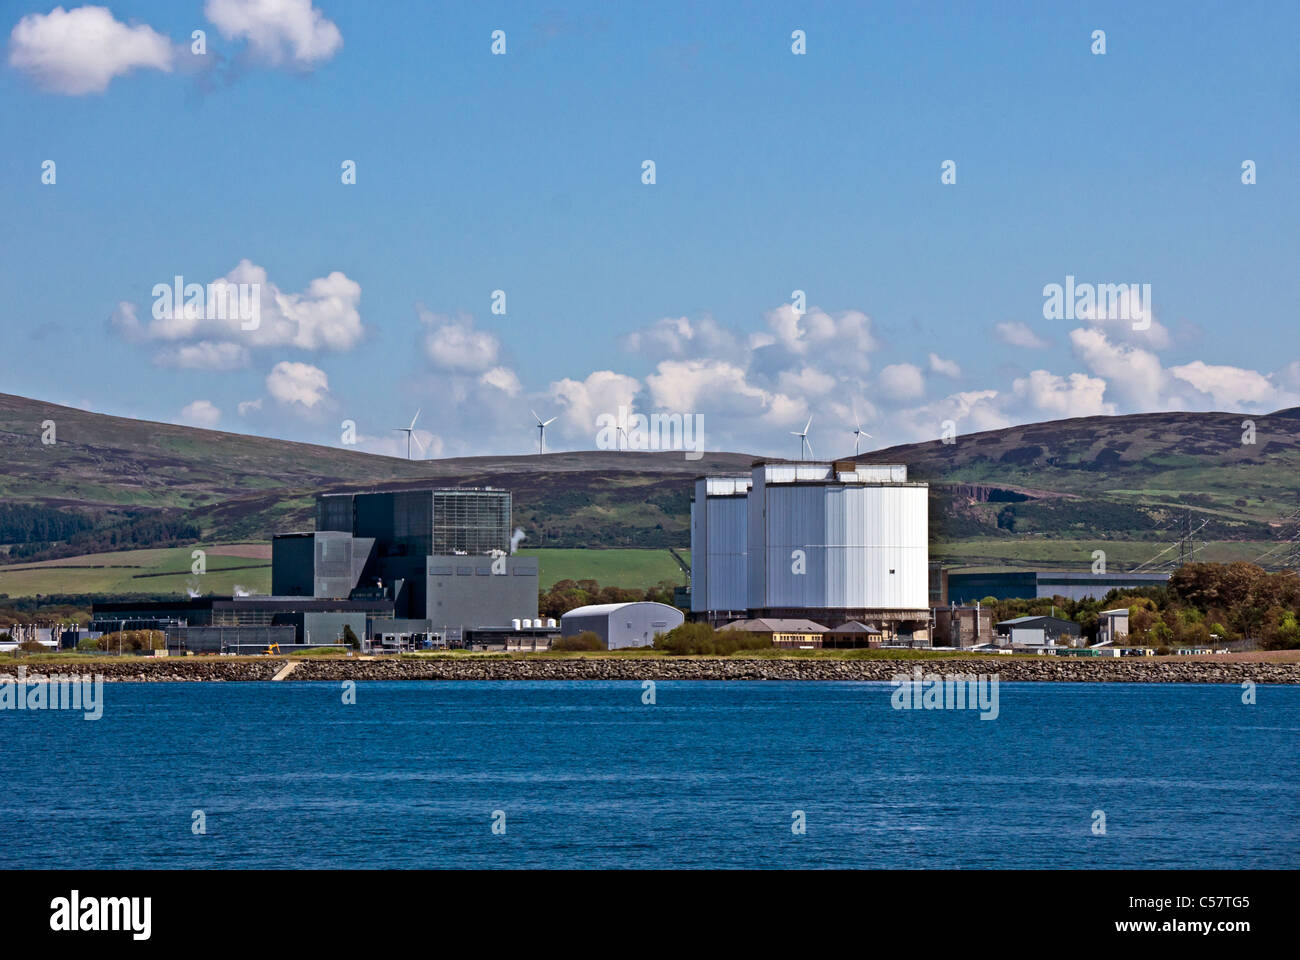 Hunterston nuclear power station at Hunterston Ayrshire Scotland as seen from the Firth of Clyde side with wind - Stock Image